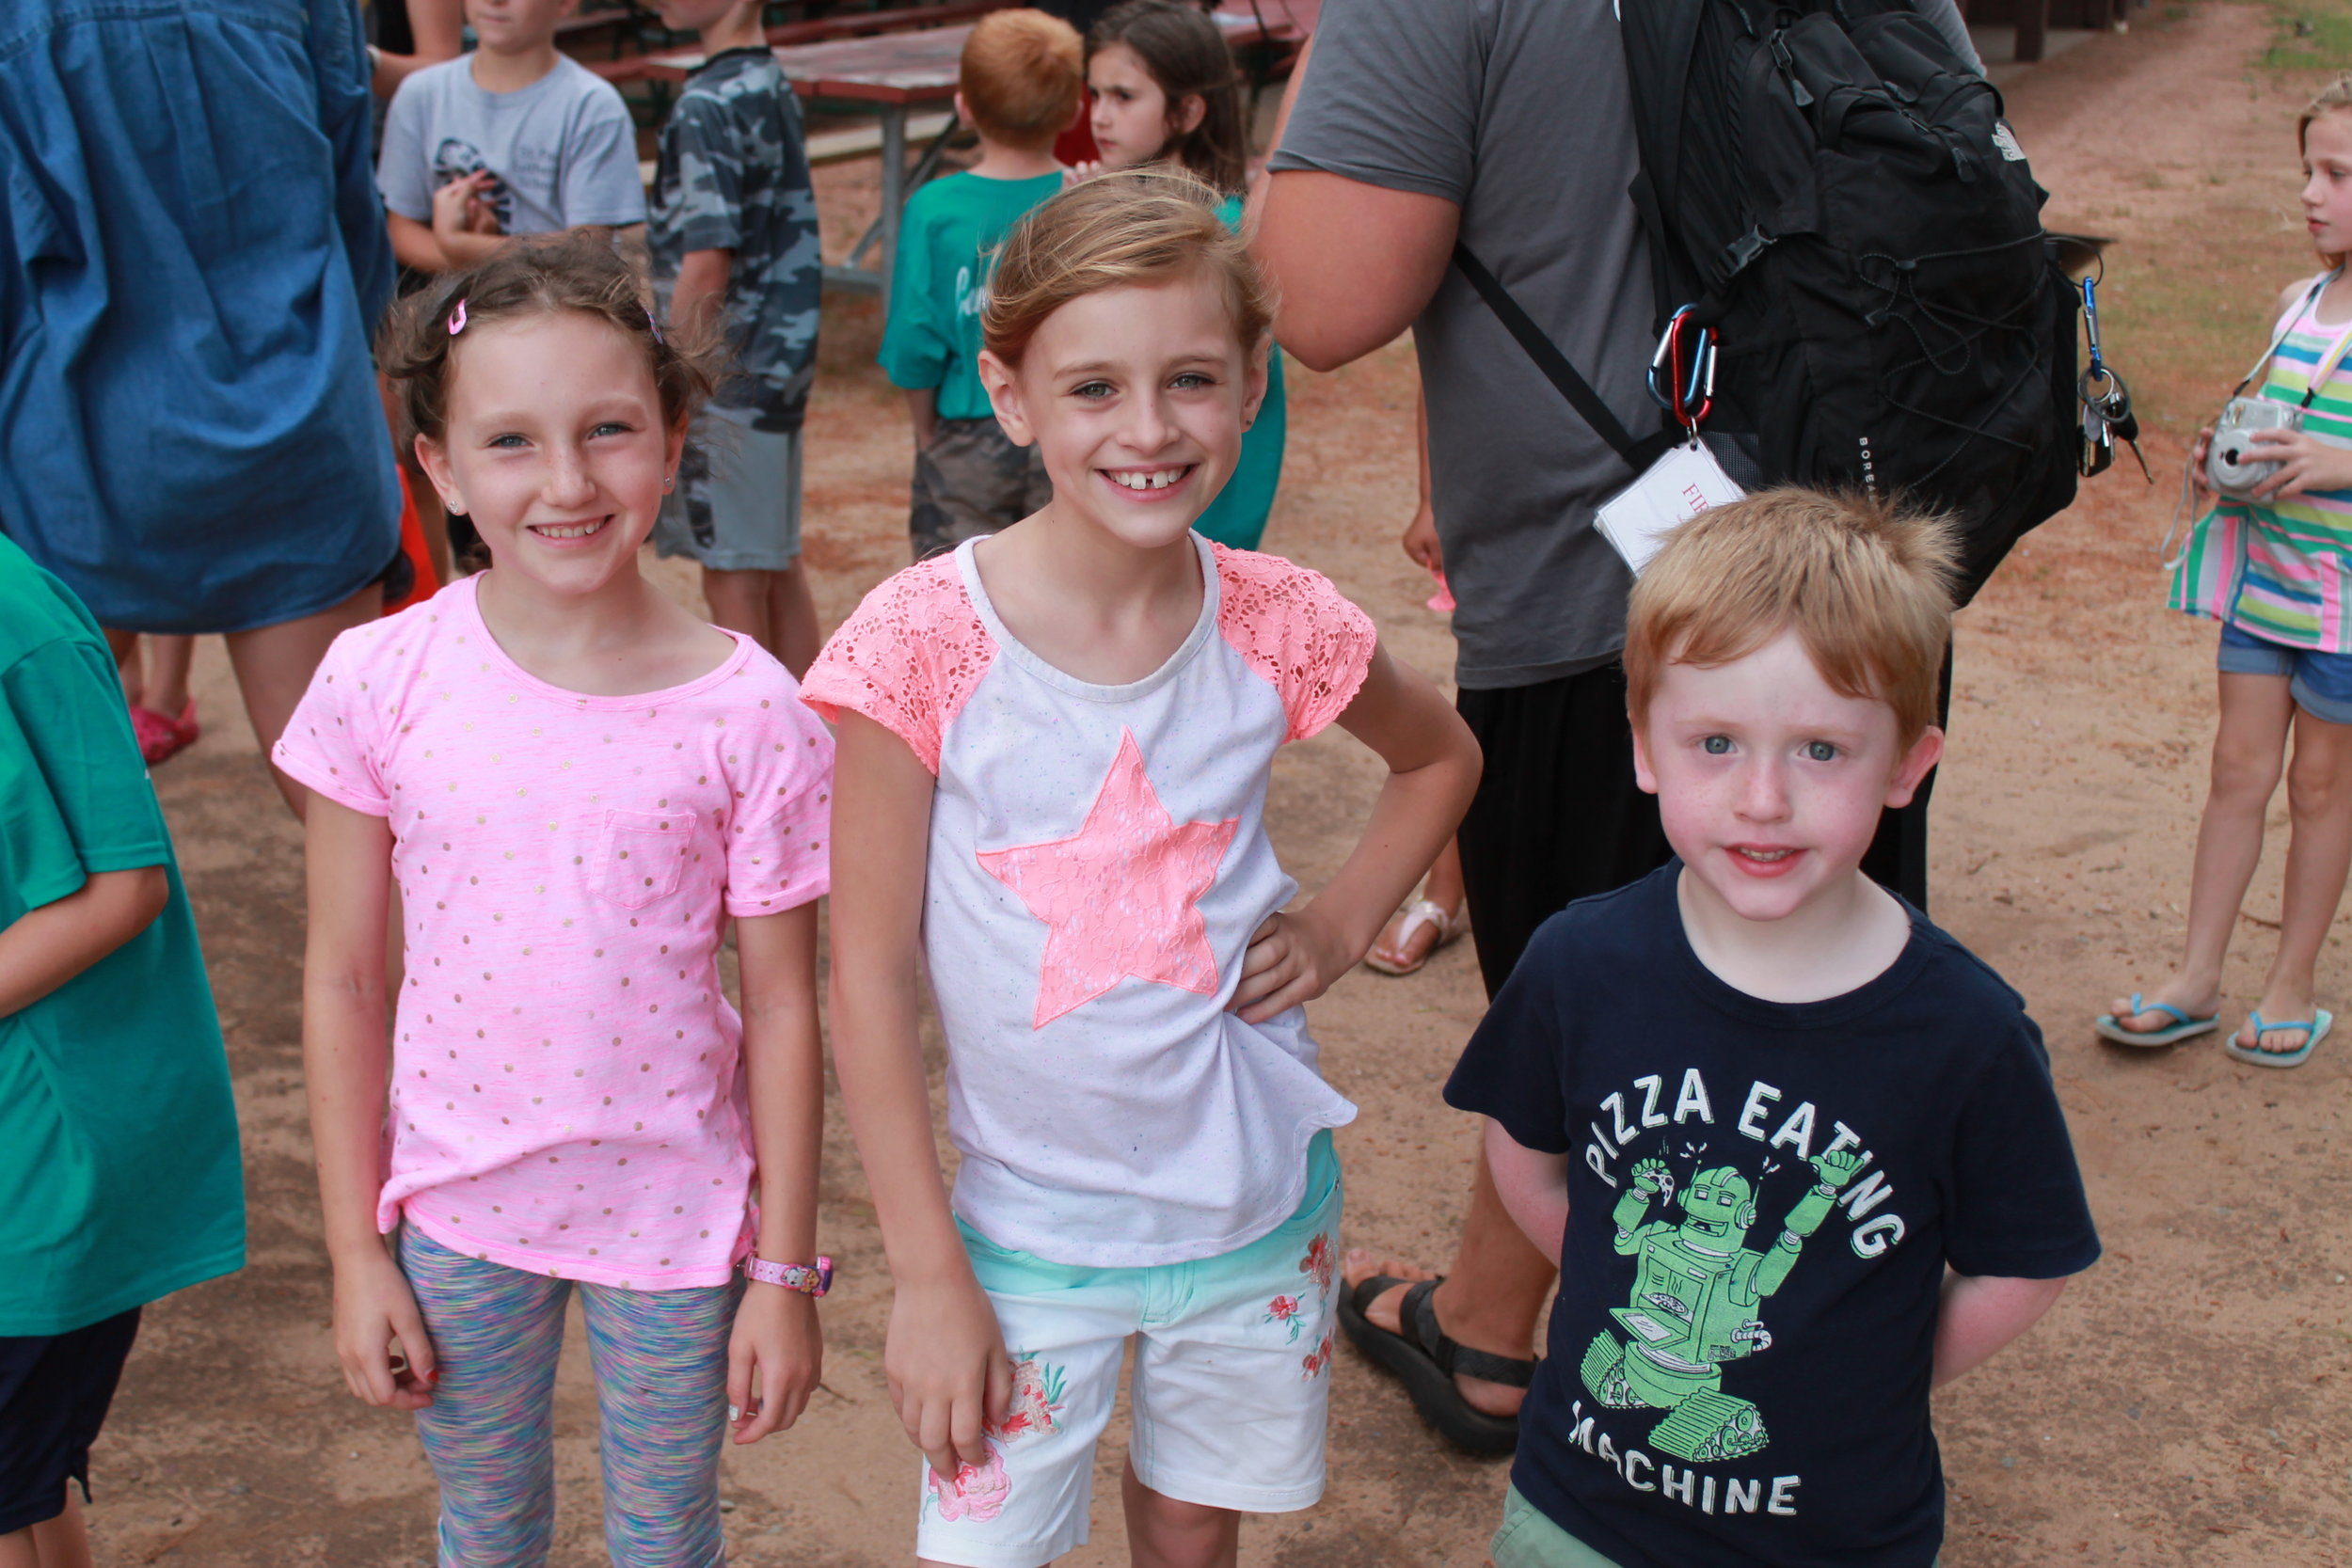 Camp Gift Certificates - Good for the Canteen, a Summer Camp, or a Cottage Rental!Available in any amount. Just tell us how many you would like.Please call Camp at 715-546-3647. We can have your gift certificate out in a day or two.